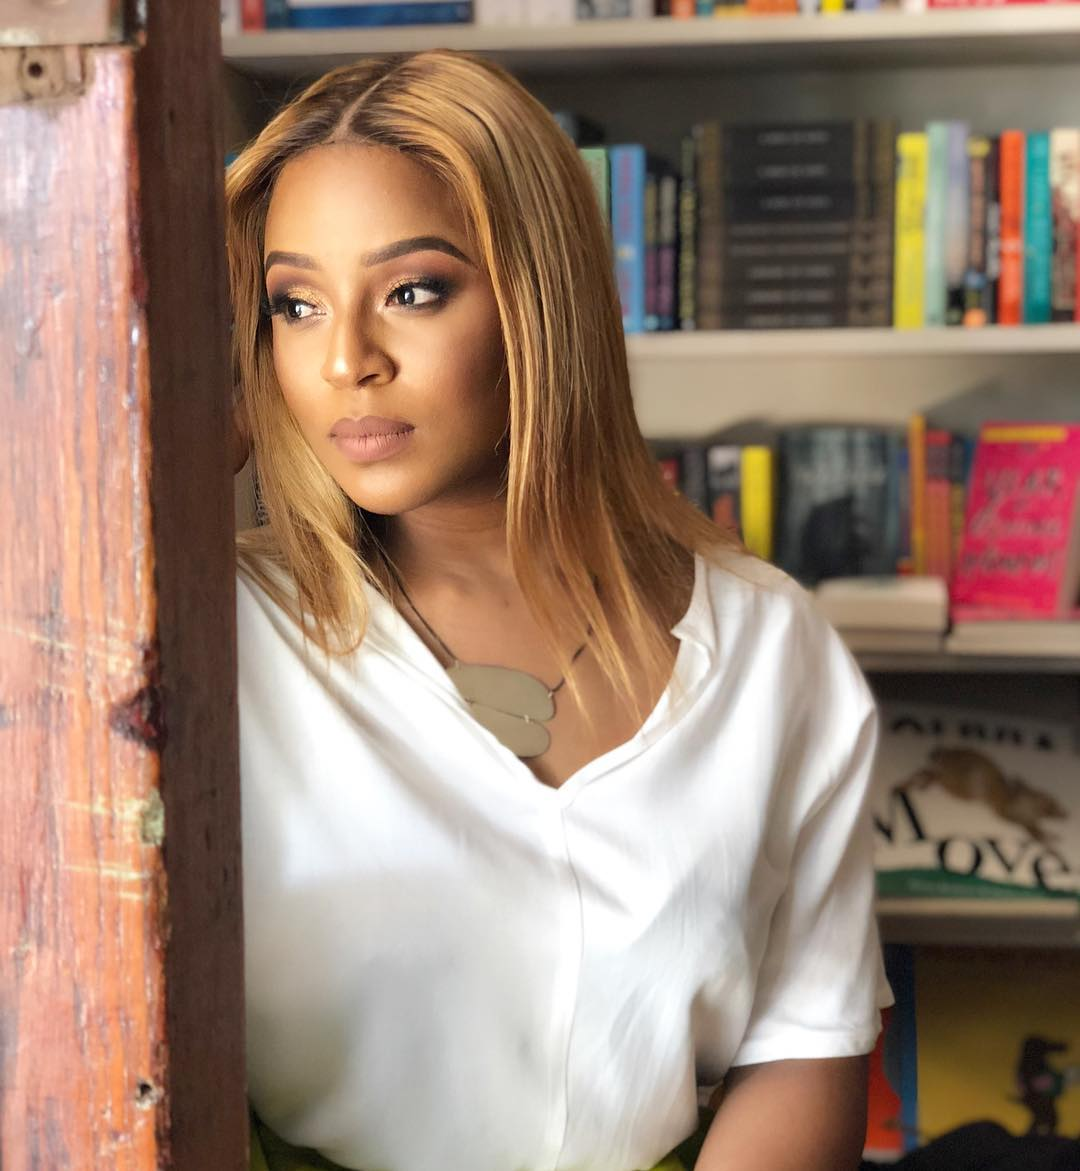 Get To Know Jessica Nkosi From The Queen